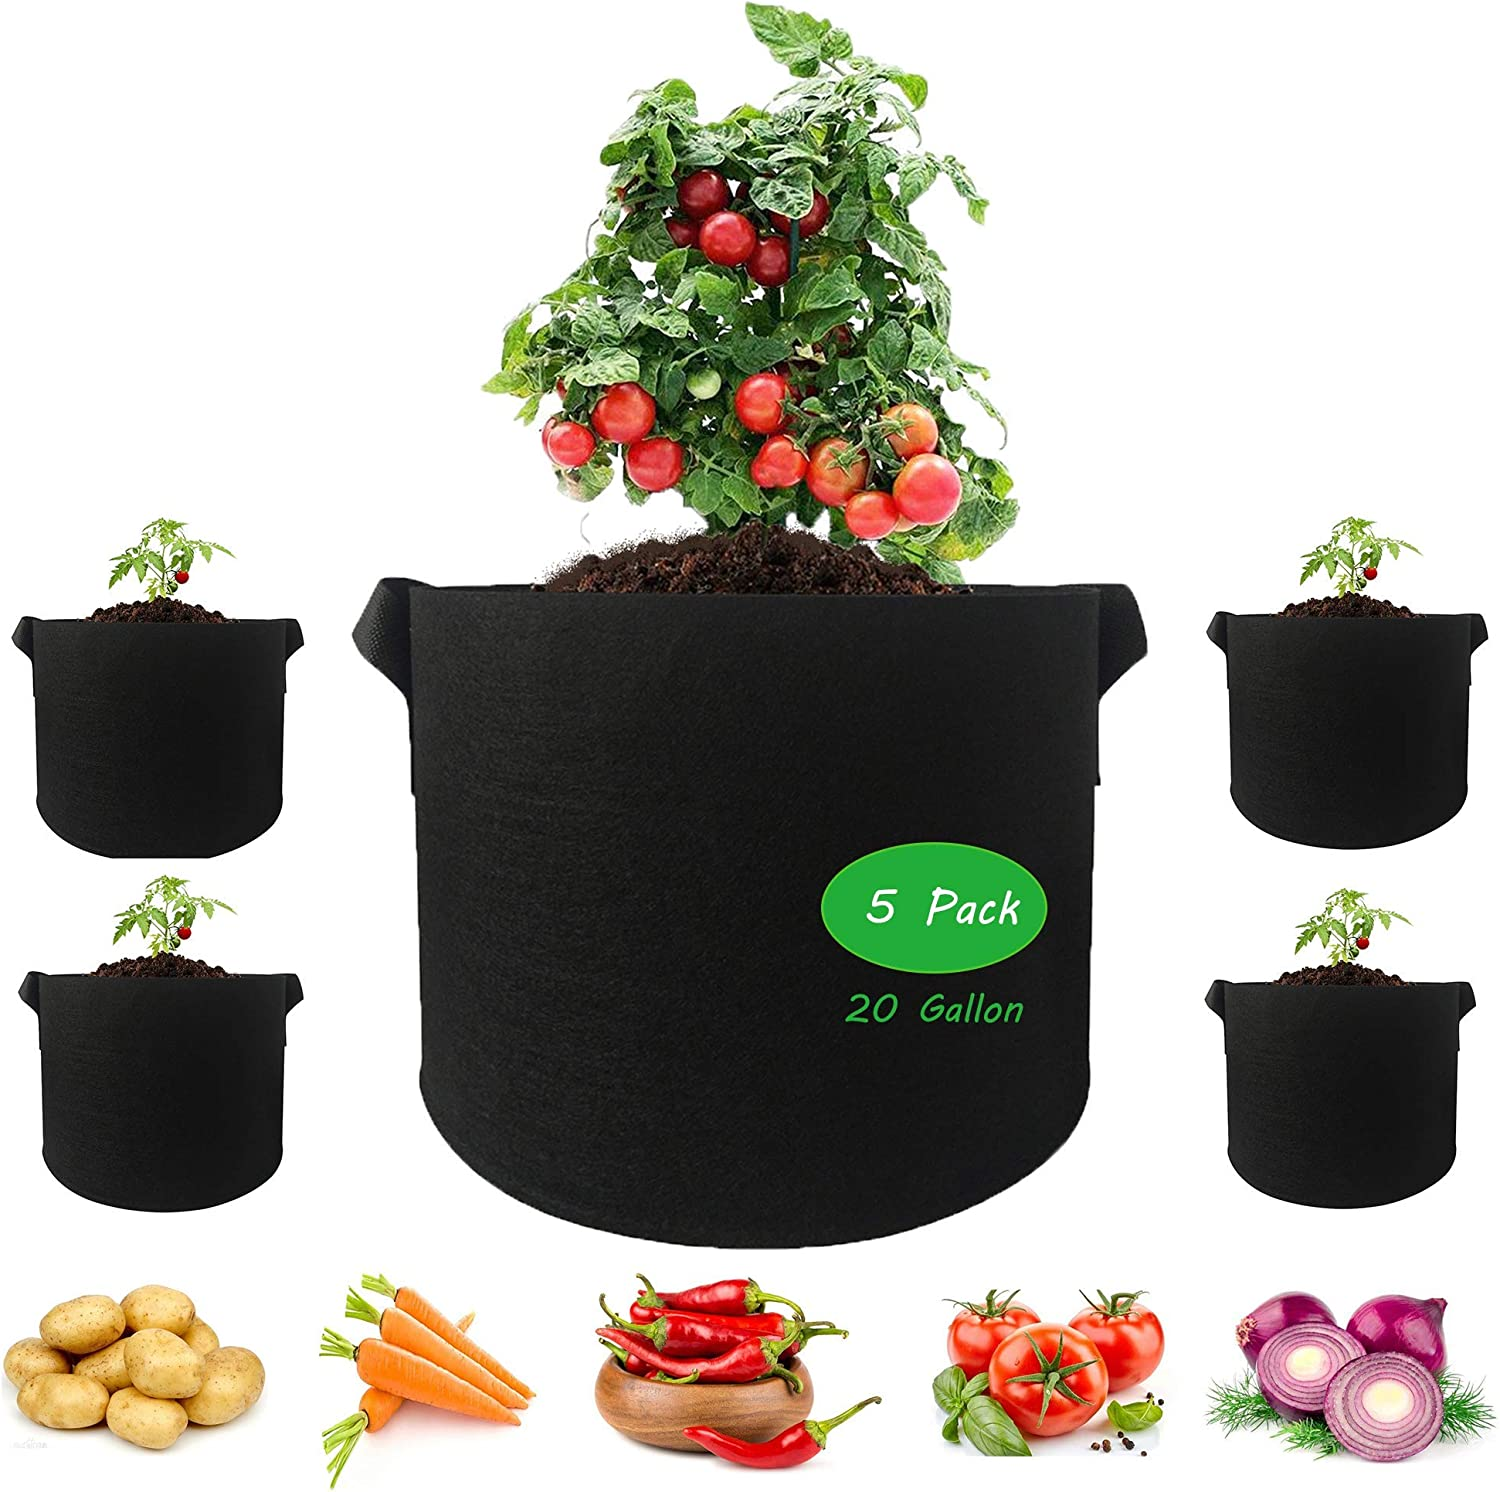 SAFER US-DESIGN 5 Pack 20 Gallon Plant Grow Bags, Thickened Non-Woven Fabric Pots with Handles Indoor Outdoor Grow Containers for Vegetables Fruits Flowers - Black